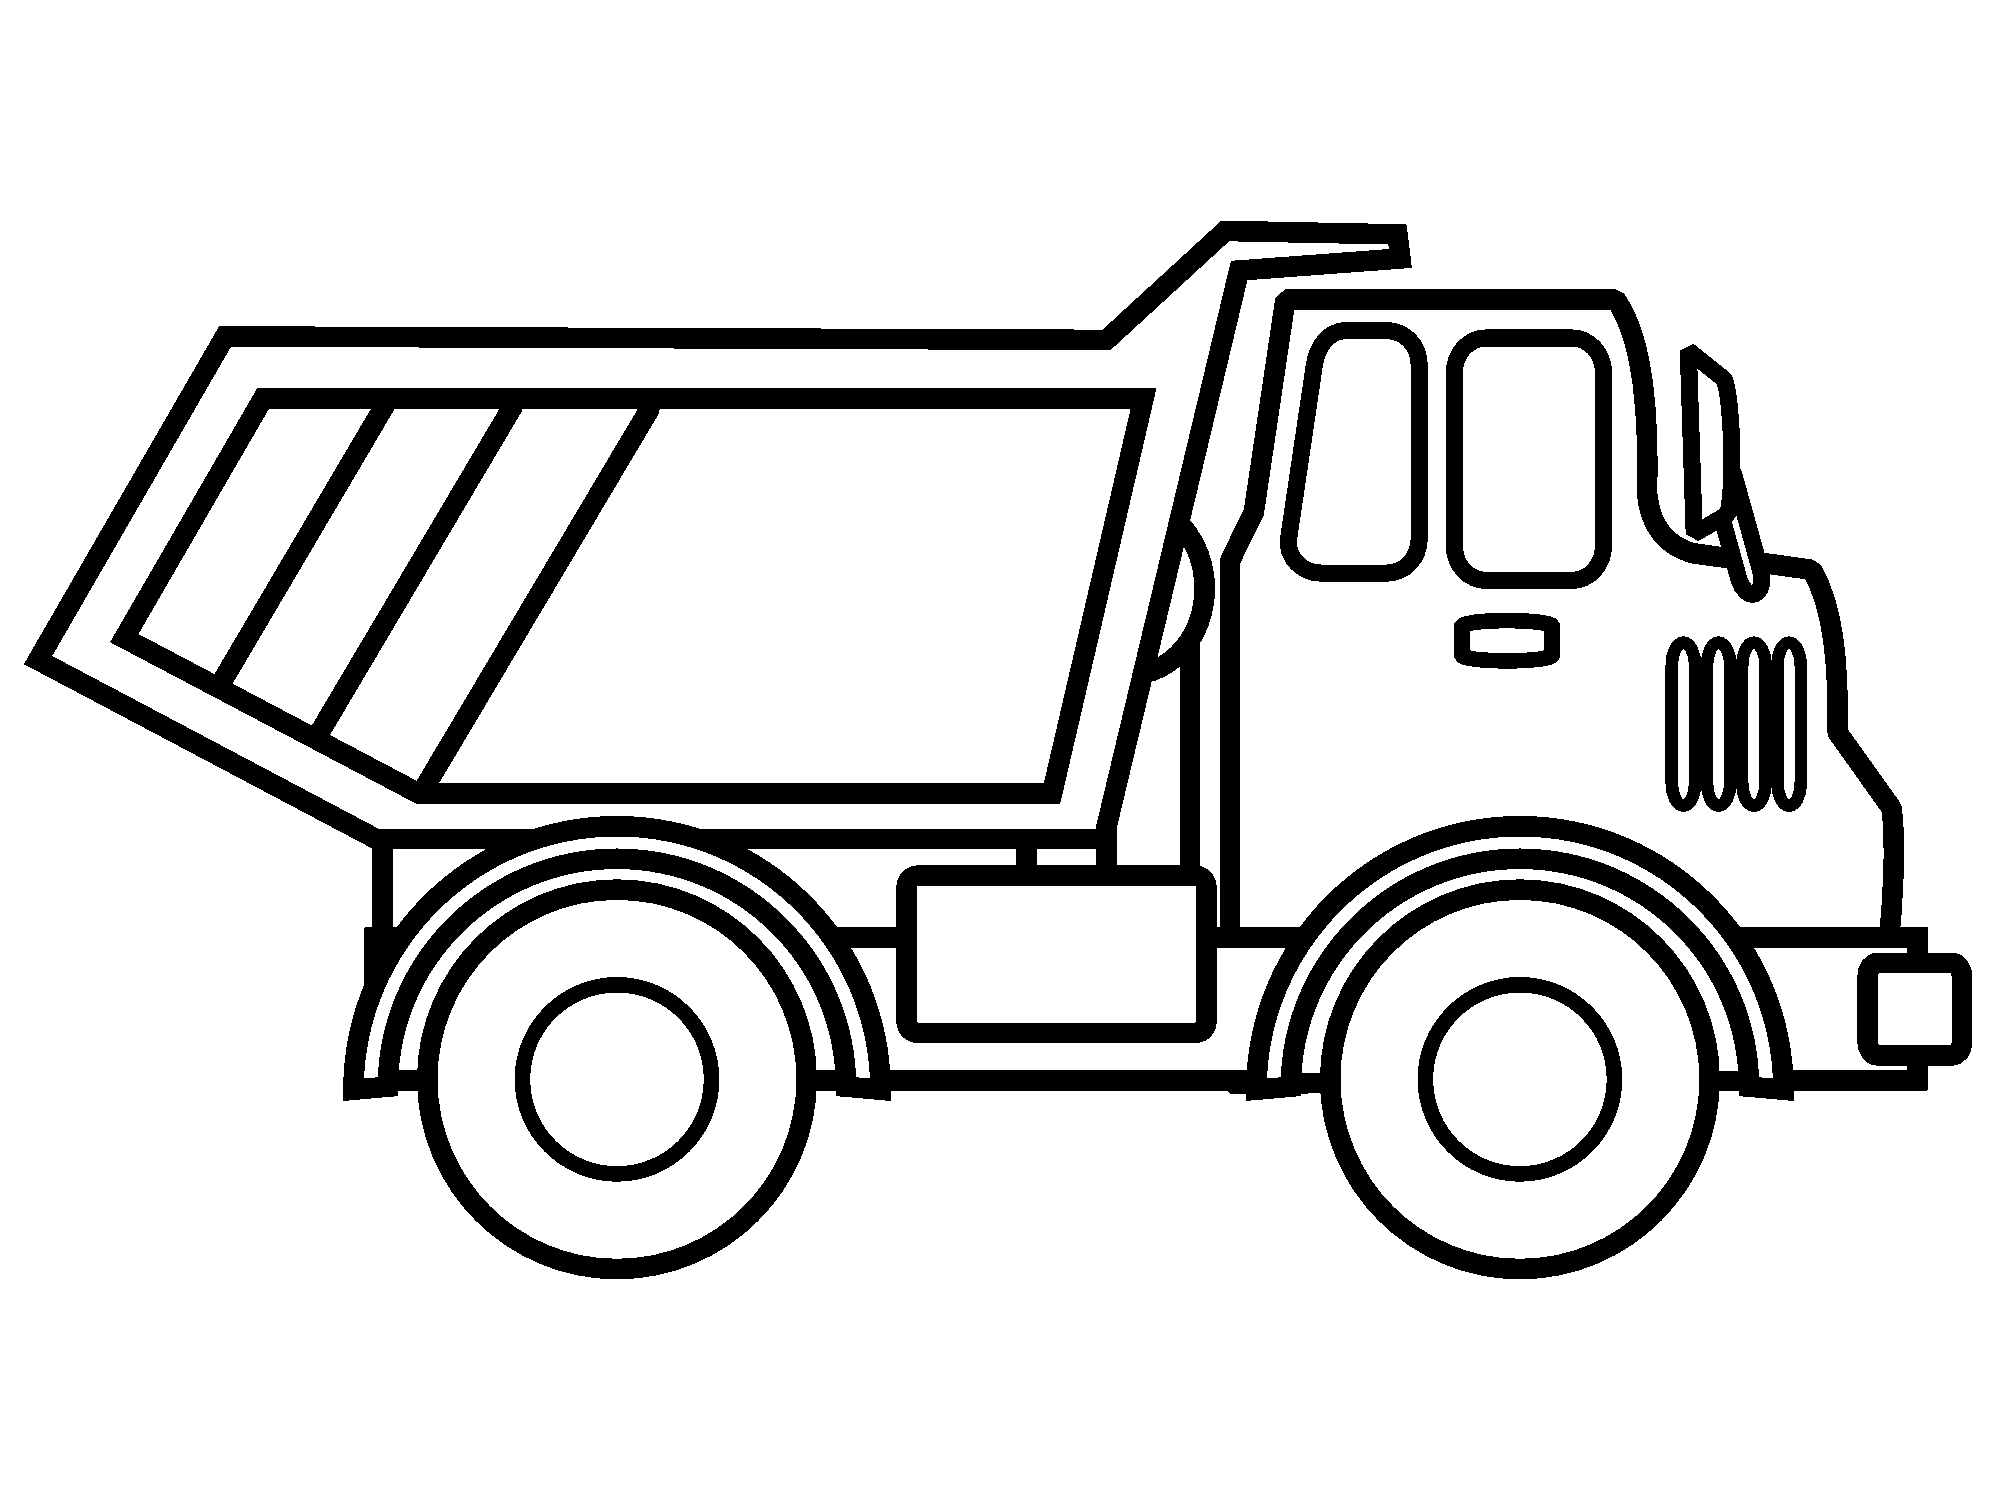 construction truck coloring pages - dump truck coloring pages construction truck coloring pages new coloring brockportcc for kids